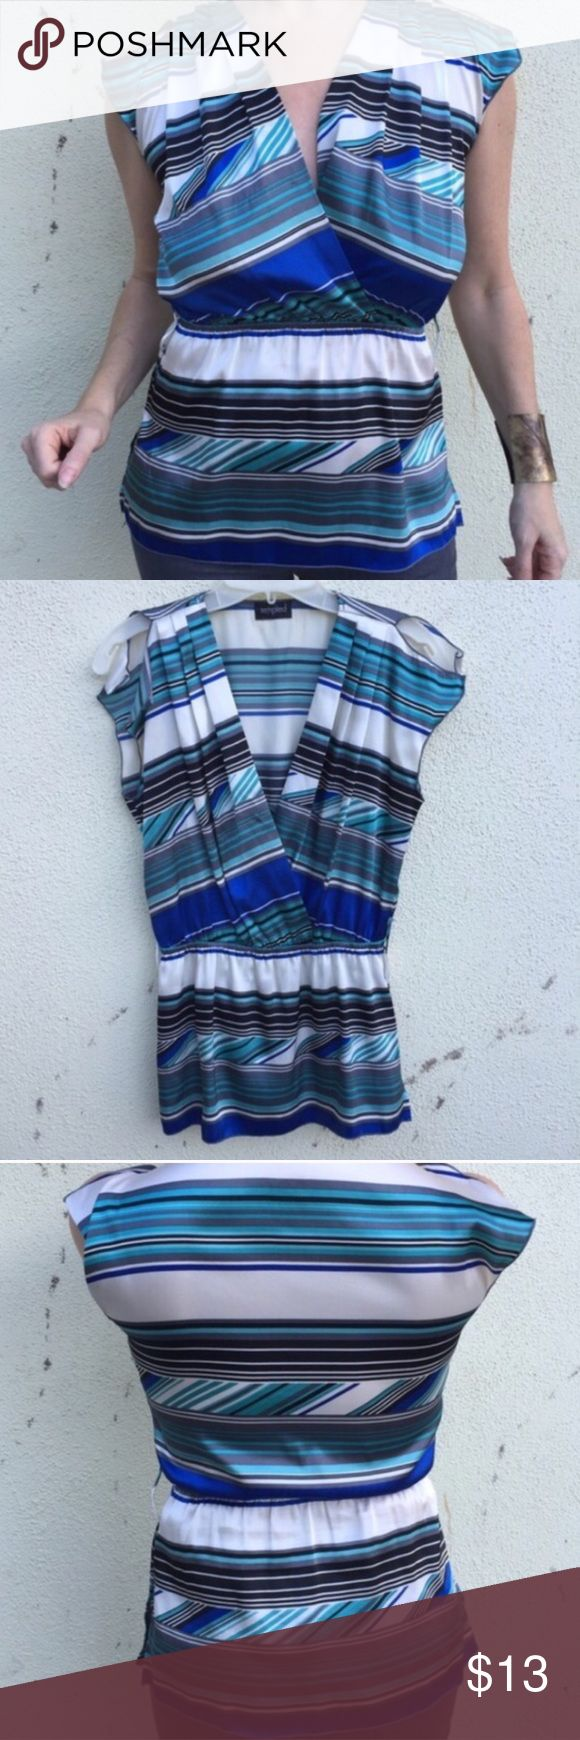 SALE‼️Blue white striped TOP blouse peplum wrap M Satiny top with stripes, faux wrap neck and elastic waist creating almost a peplum silhouette. Great with straight skirts! Polyester. Fits medium. Tag removed. (N15) Guess Tops Blouses